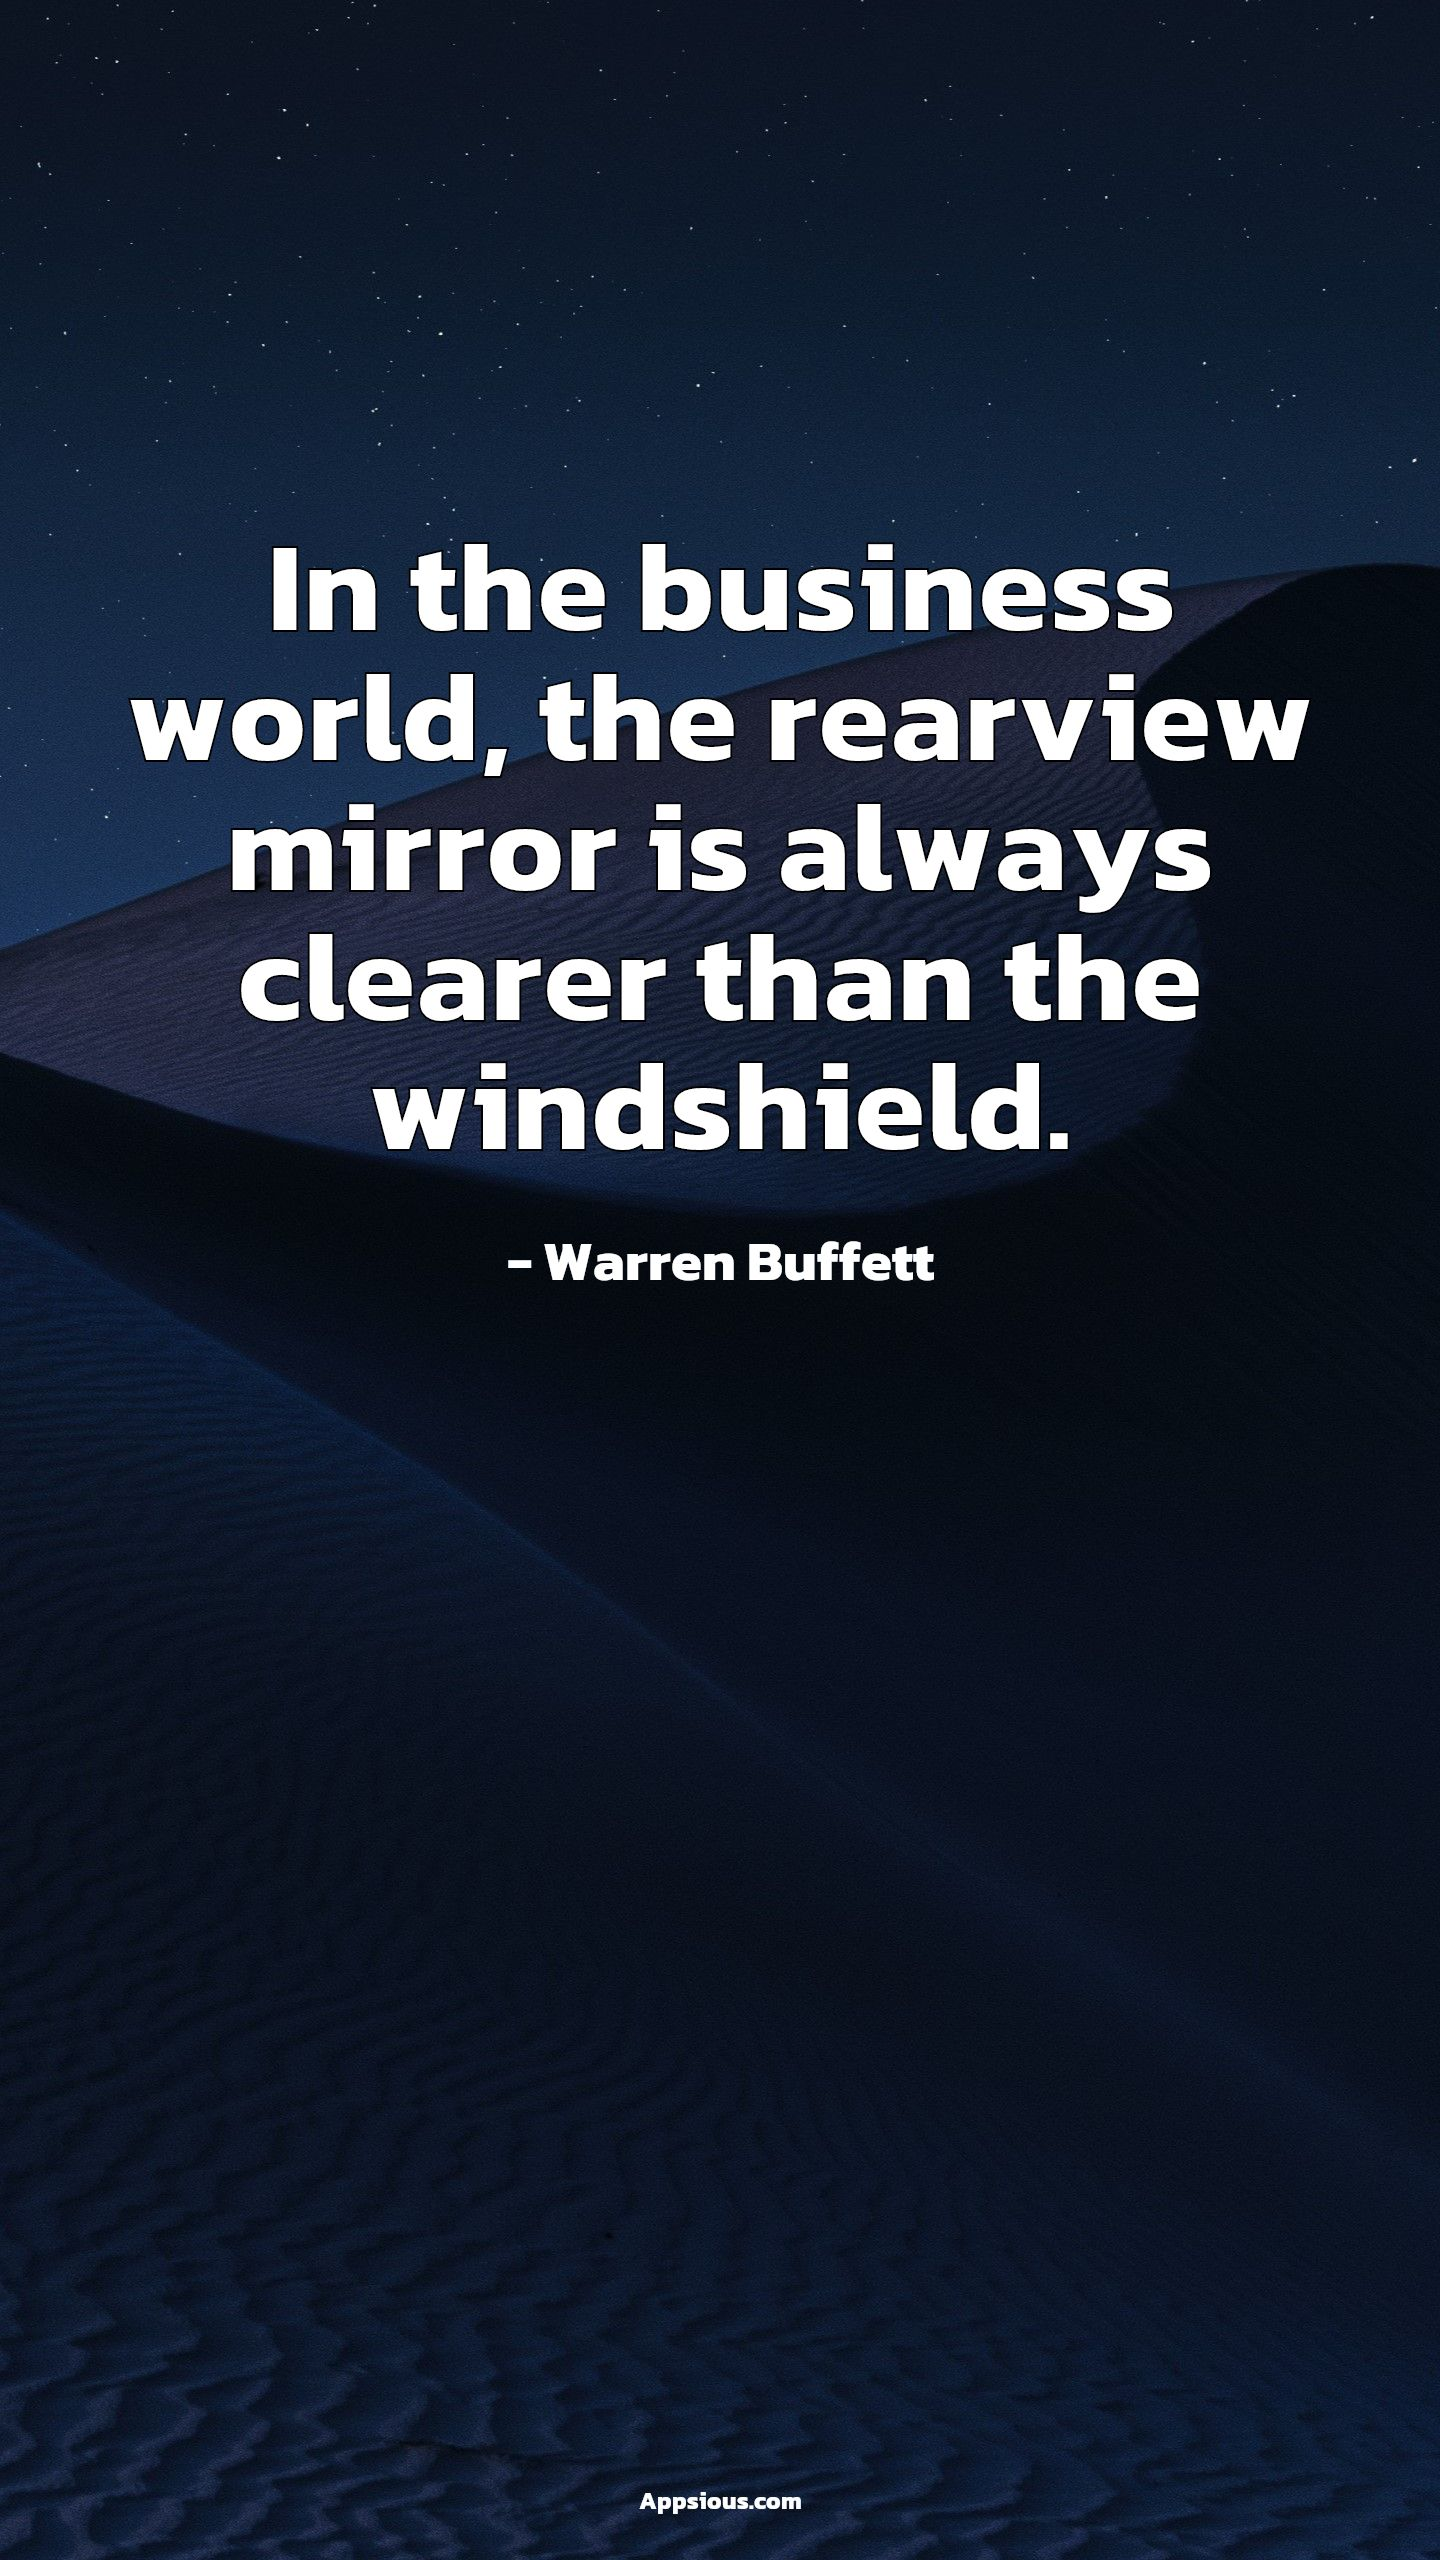 In the business world, the rearview mirror is always clearer than the windshield.